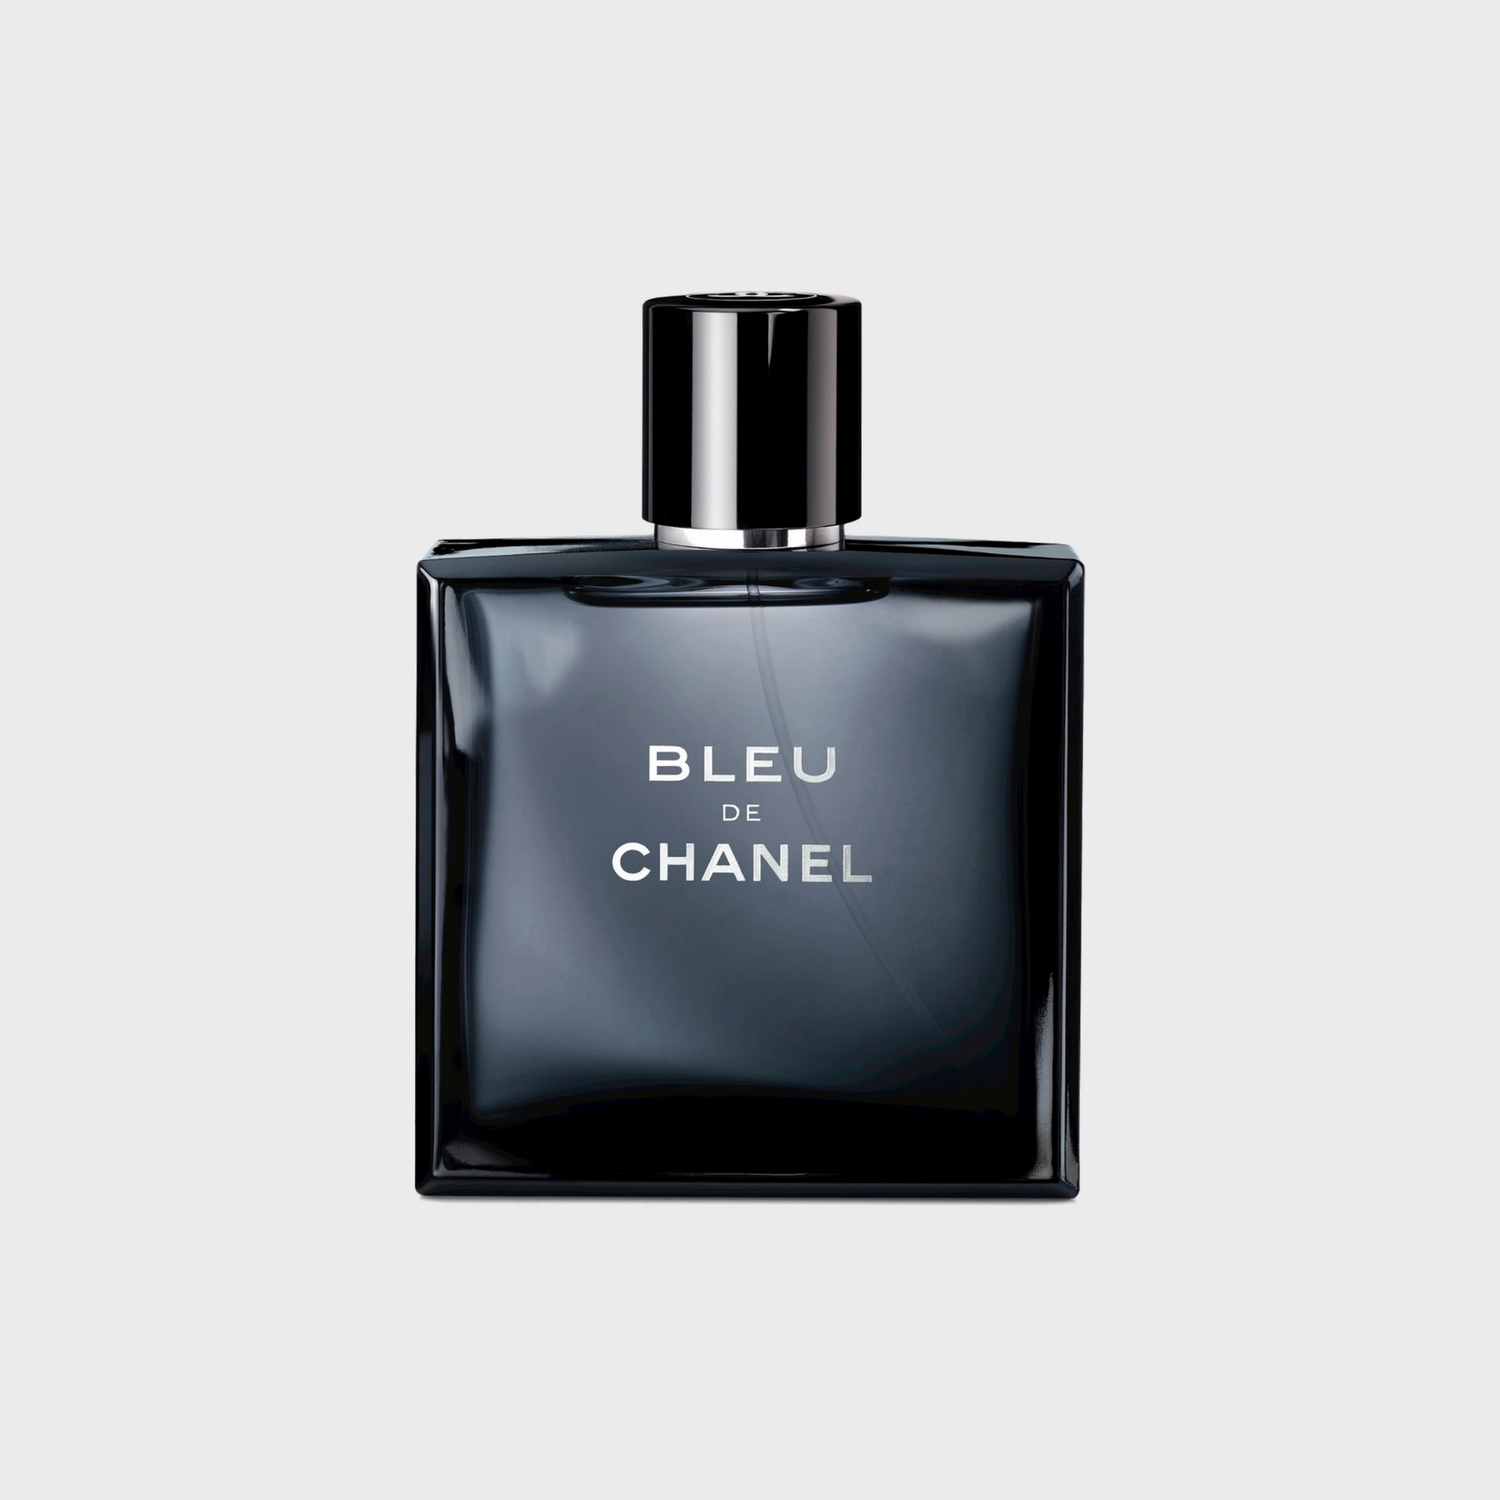 Bleu De Chanel | Chanel Perfume Review | Men's Fragrance Reviews